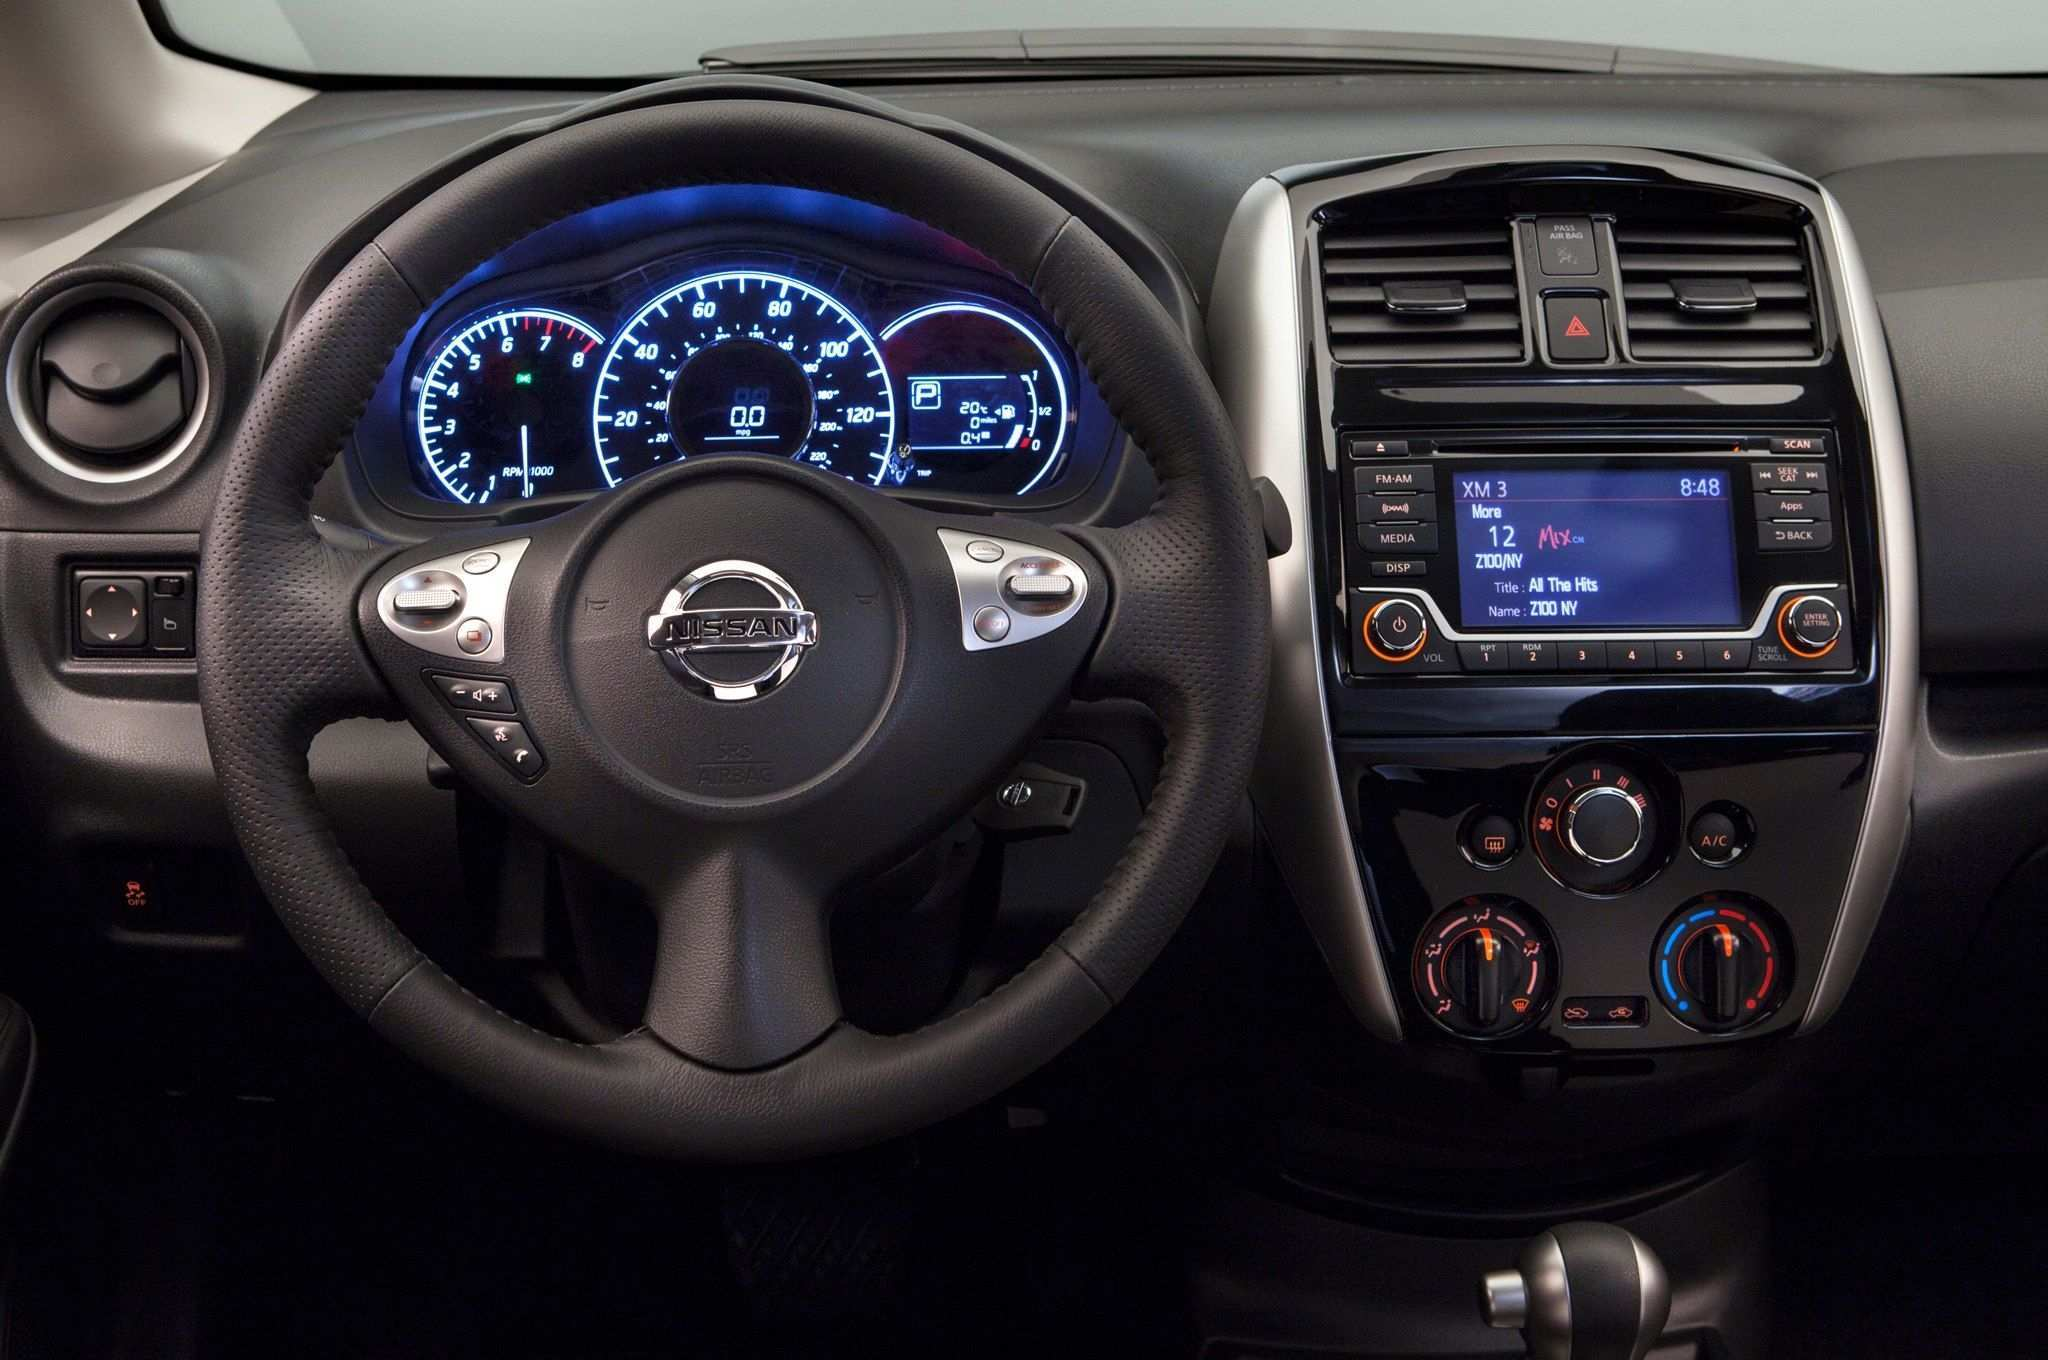 94 Gallery of Nissan Versa 2019 Interior Release for Nissan Versa 2019 Interior